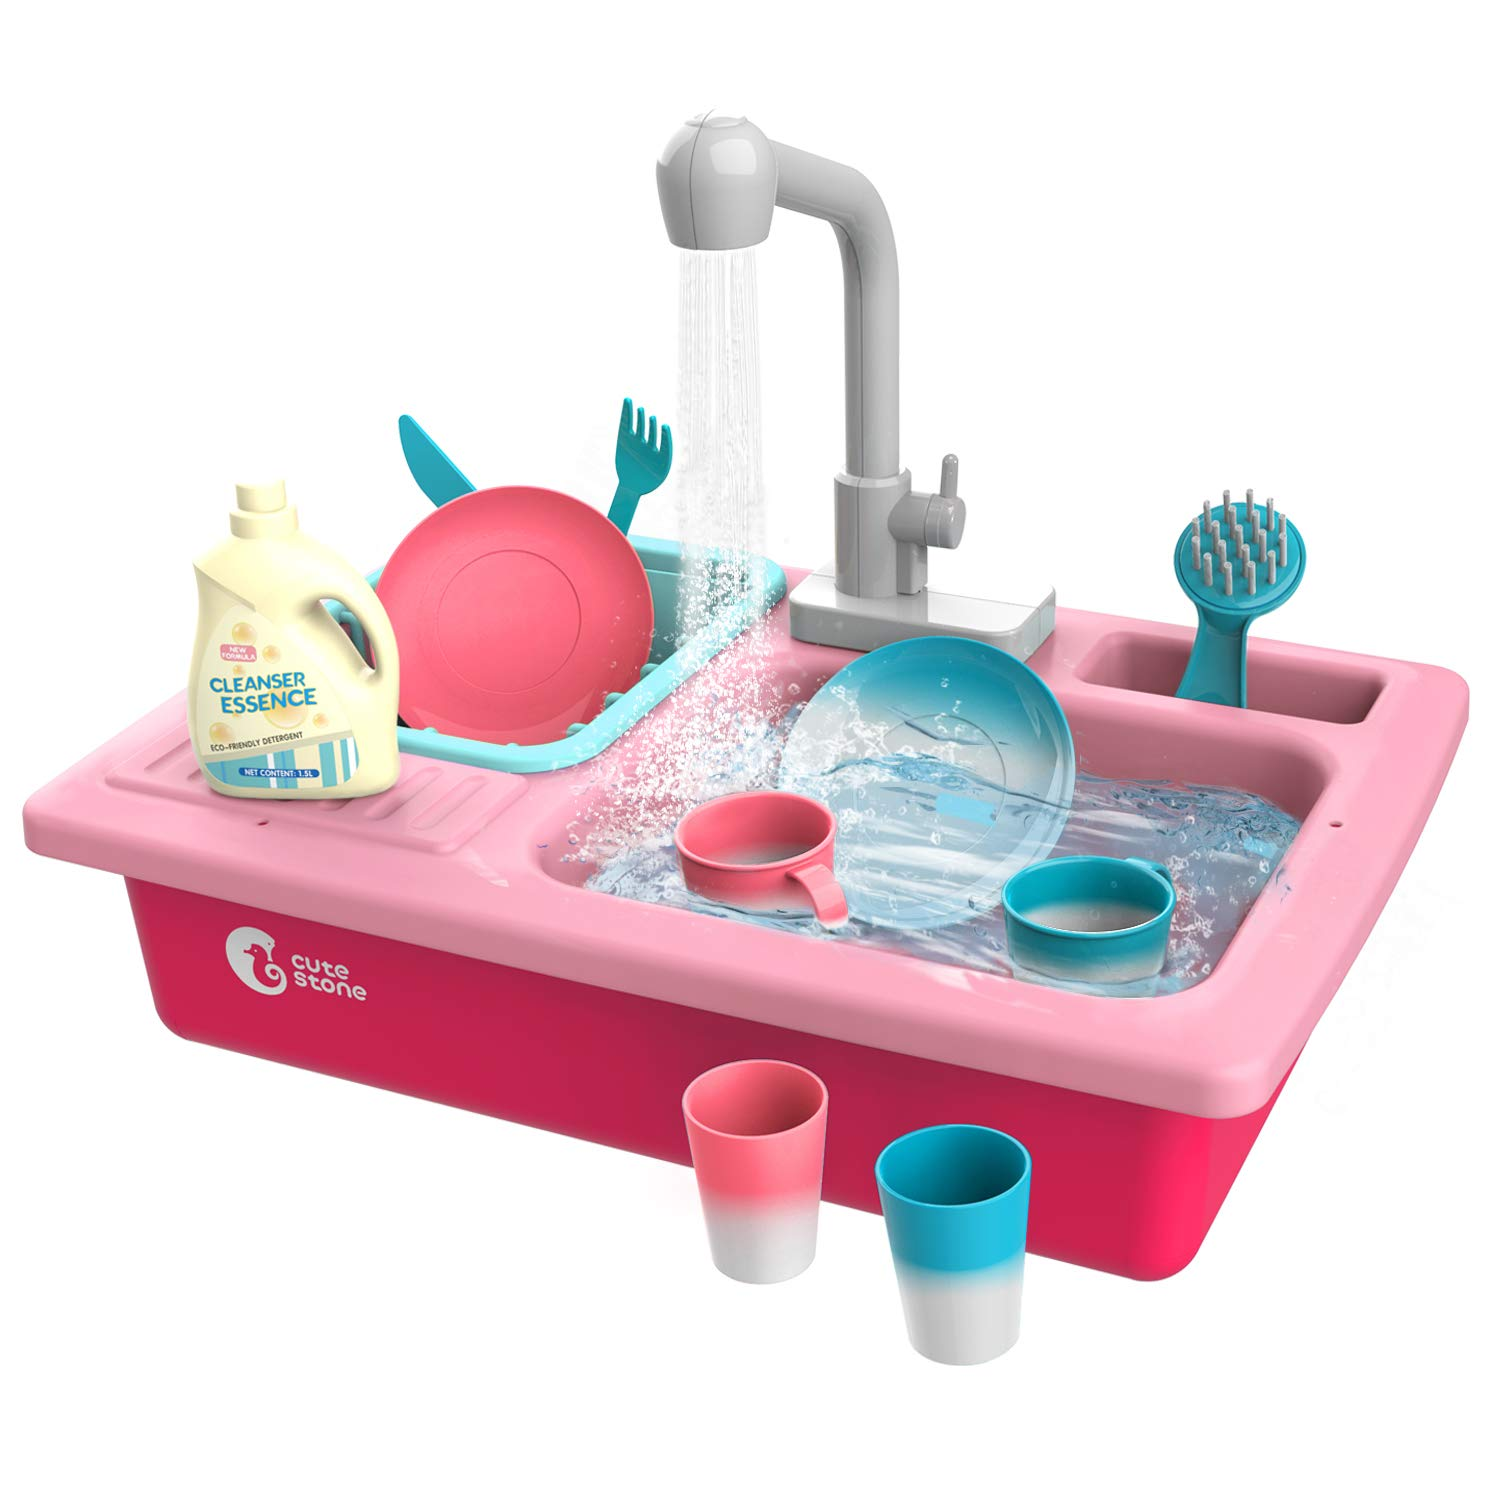 CUTE STONE Color Changing Play Kitchen Sink Toys, Children Electric Dishwasher Playing Toy with Running Water,Upgraded Real Faucet and Play Dishes,Pretend Play Kitchen Toys for Boys Girls Toddlers Kid by CUTE STONE